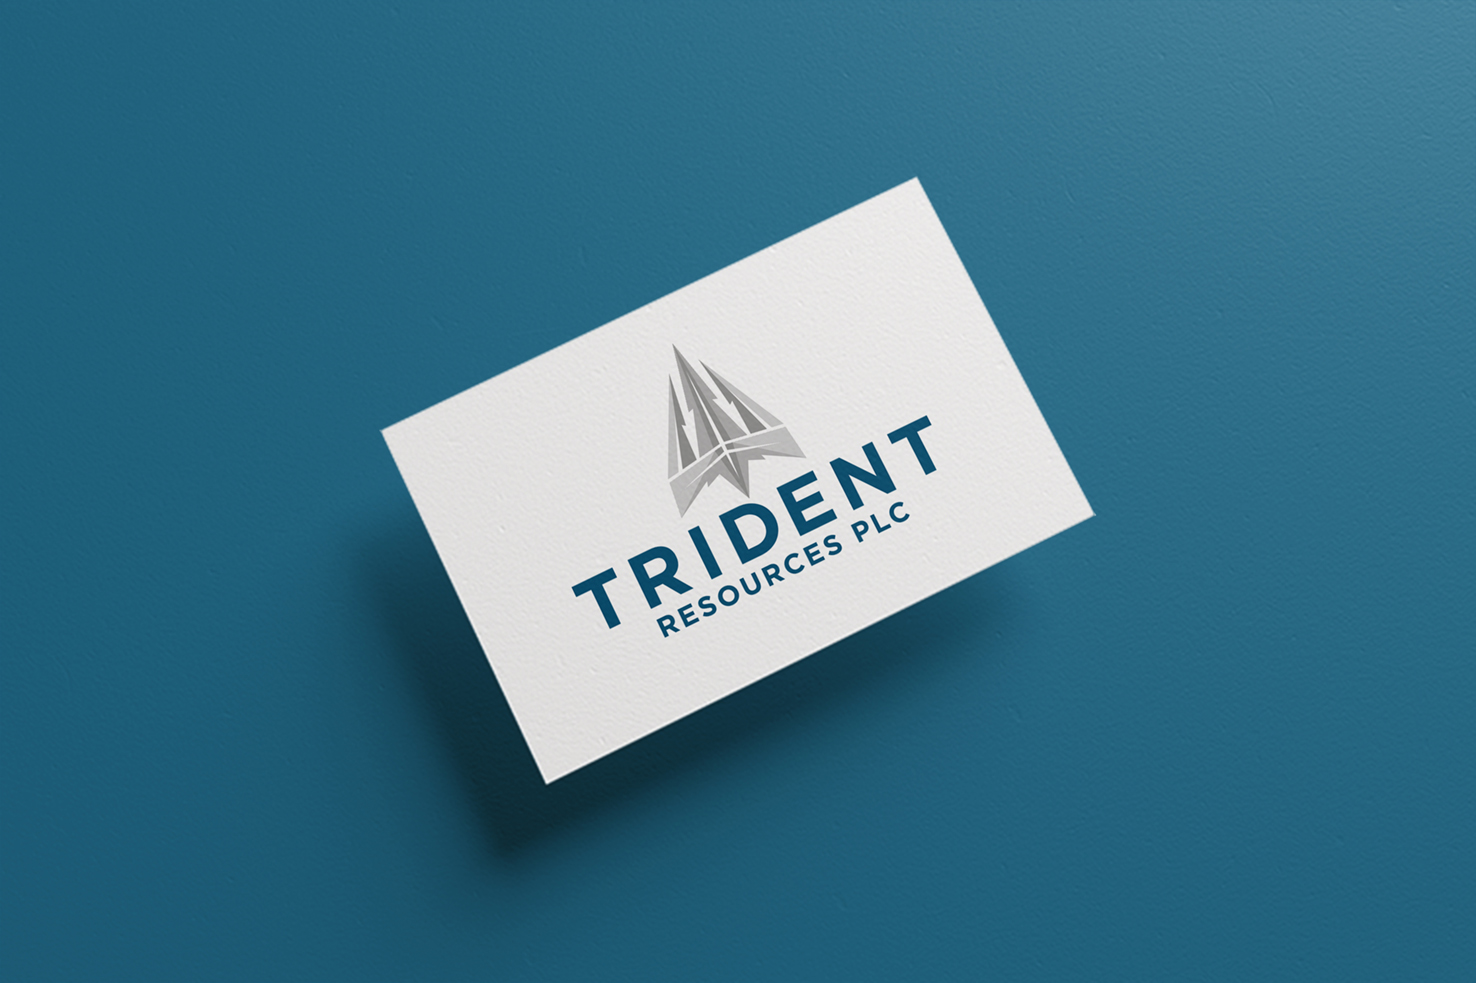 Trident Resources PLC